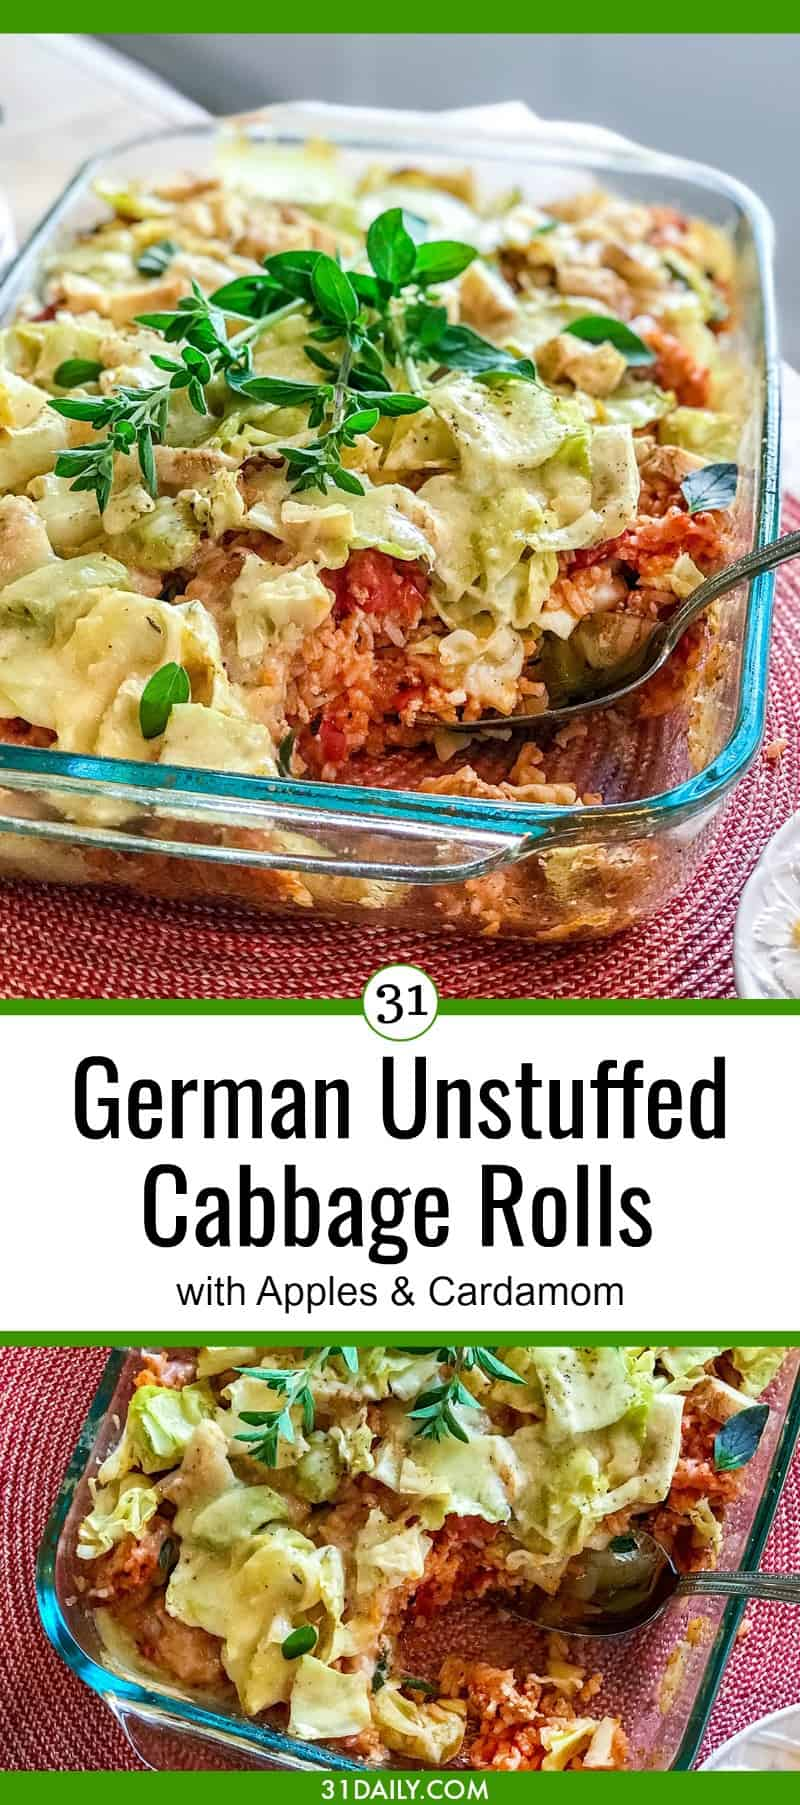 German Unstuffed Cabbage Rolls with Apple and Cardamom | 31Daily.com